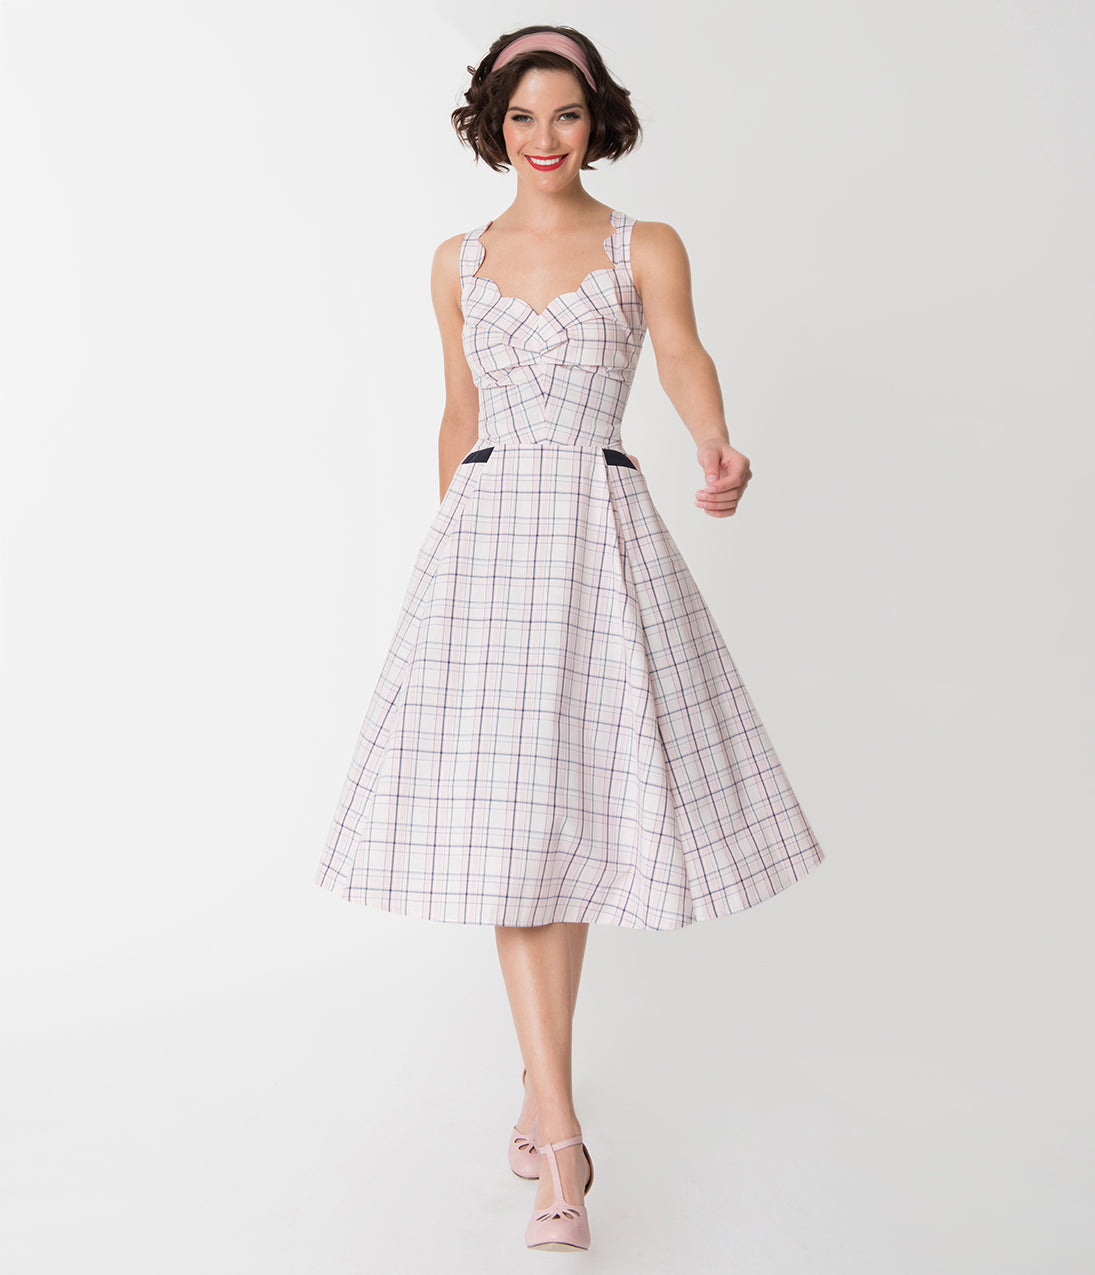 Vintage 50s Dresses: 8 Classic Retro Styles Miss Candy Floss Blush Pink Tartan Magdalena Swing Dress $118.00 AT vintagedancer.com